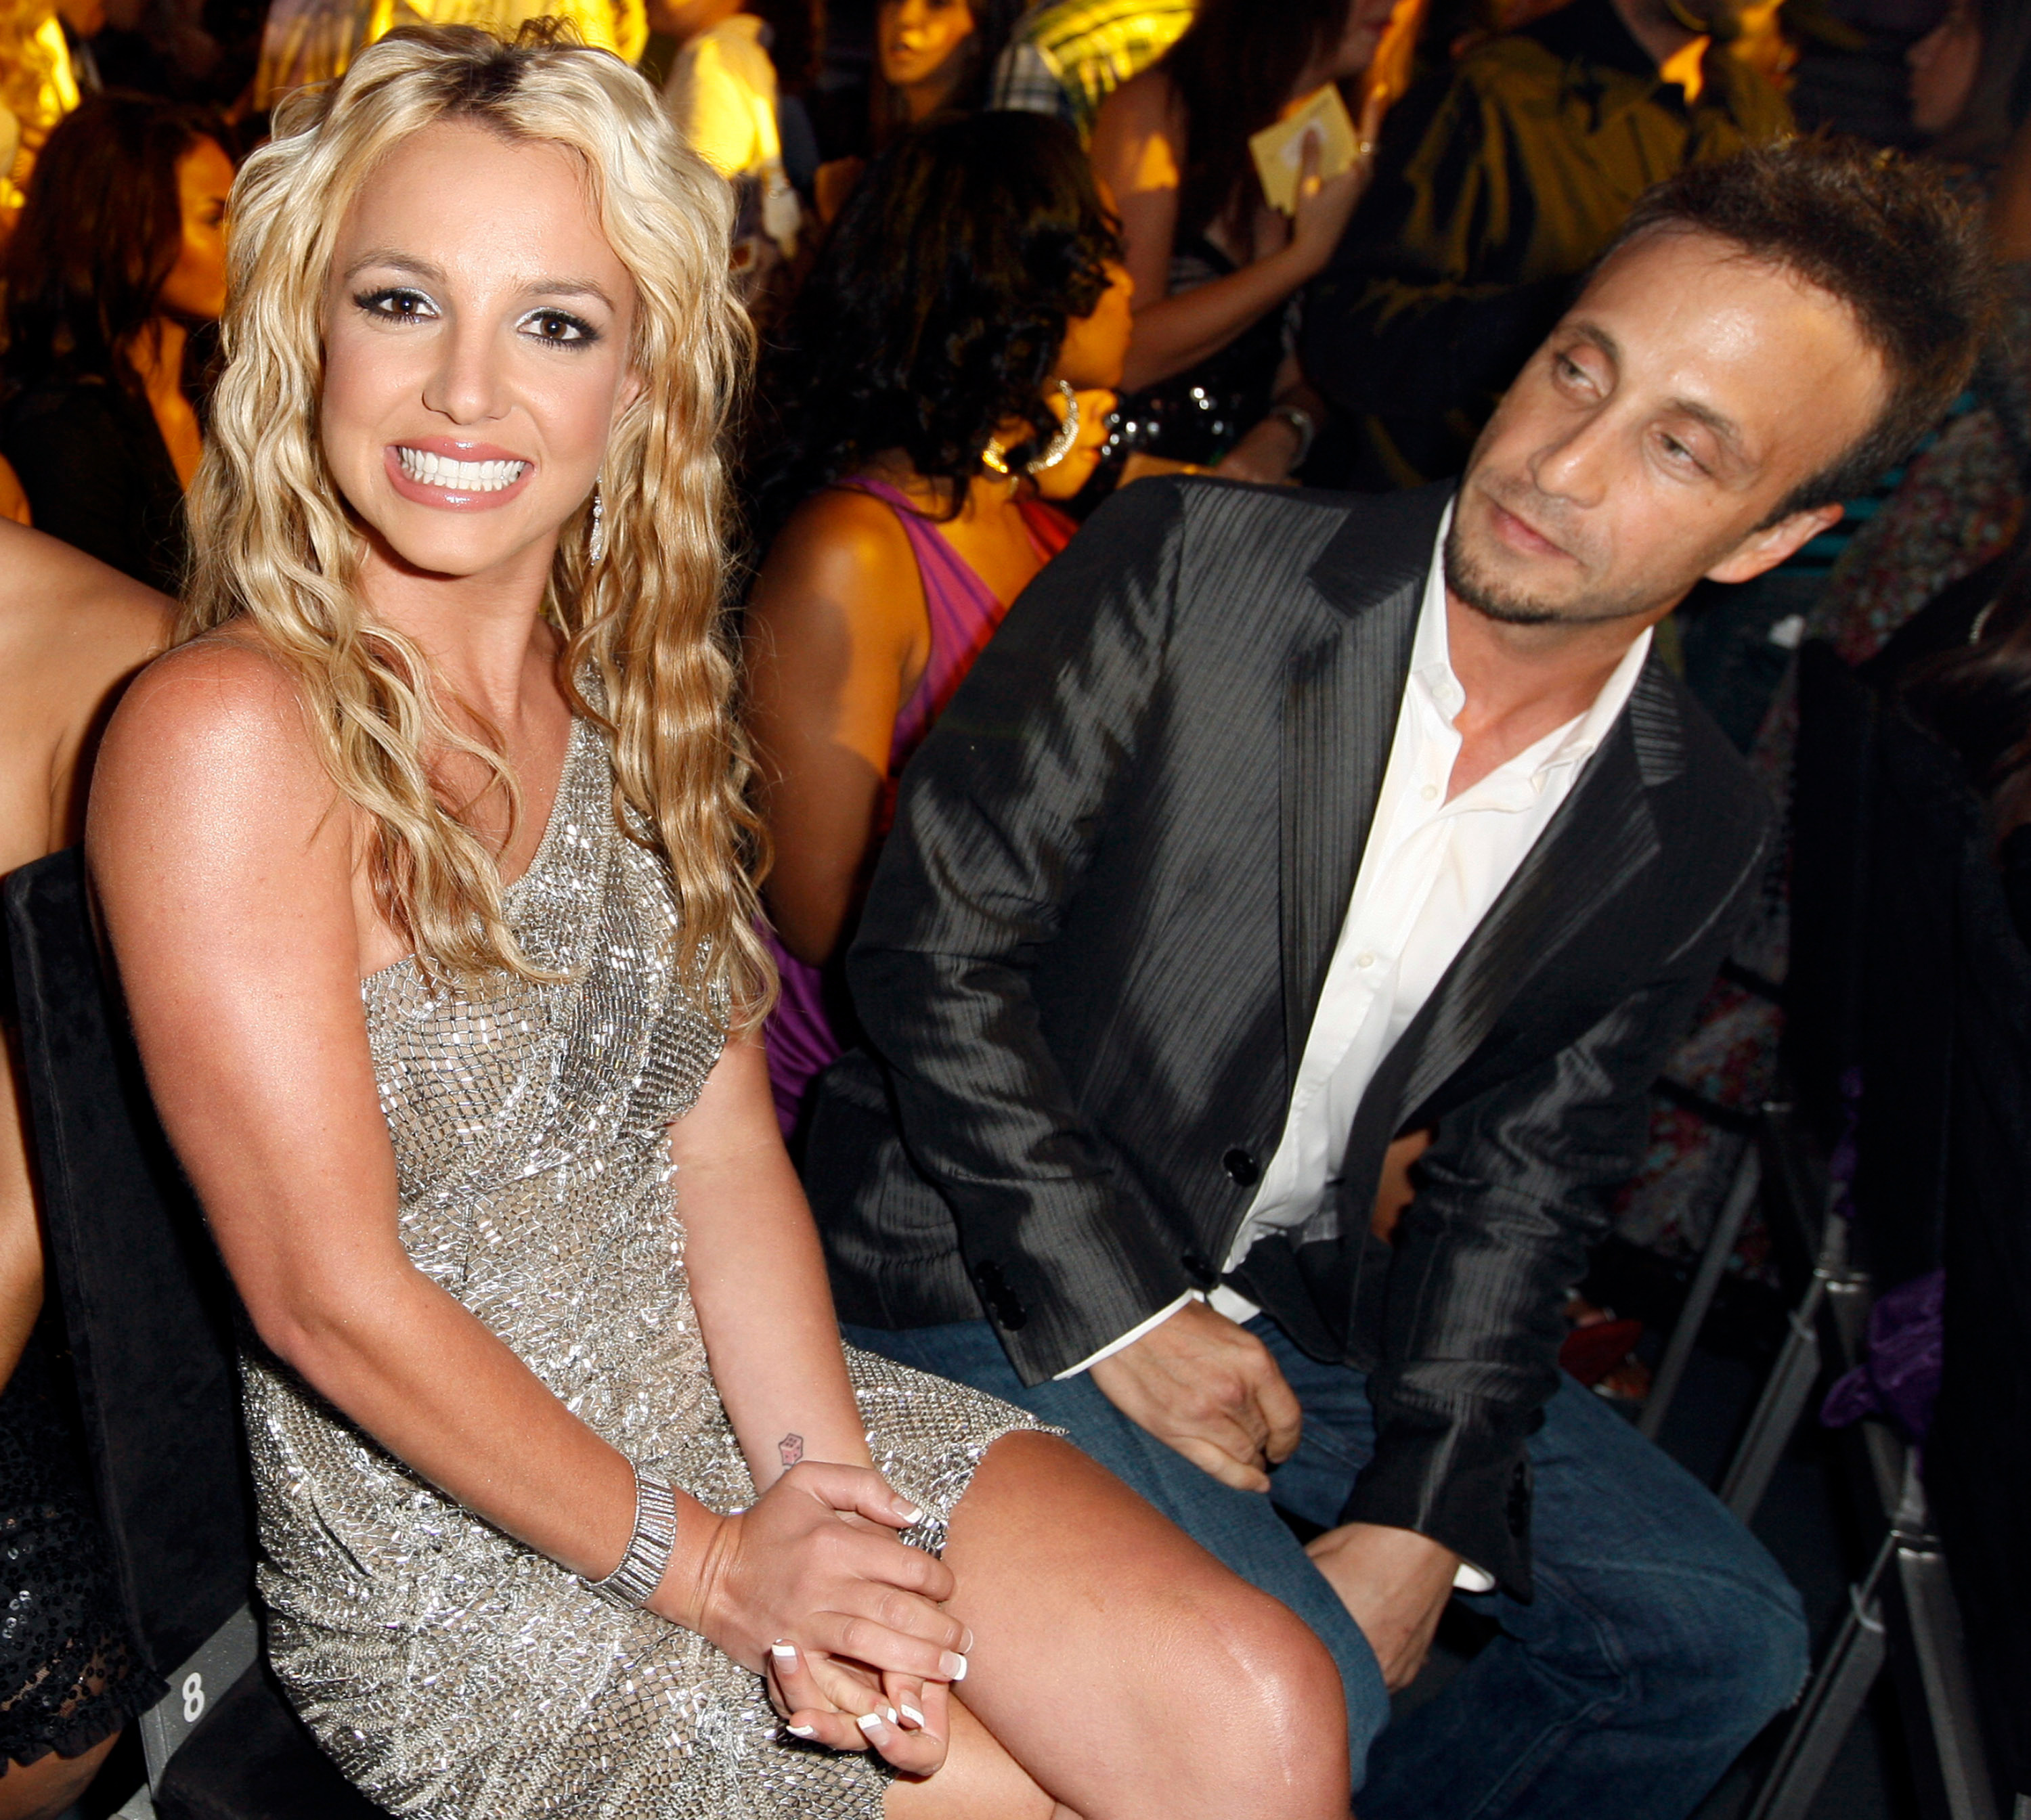 Britney Spears and manager Larry Rudolph attend the MTV Video Music Awards at Paramount Pictures Studios in Los Angeles on Sept. 7, 2008.